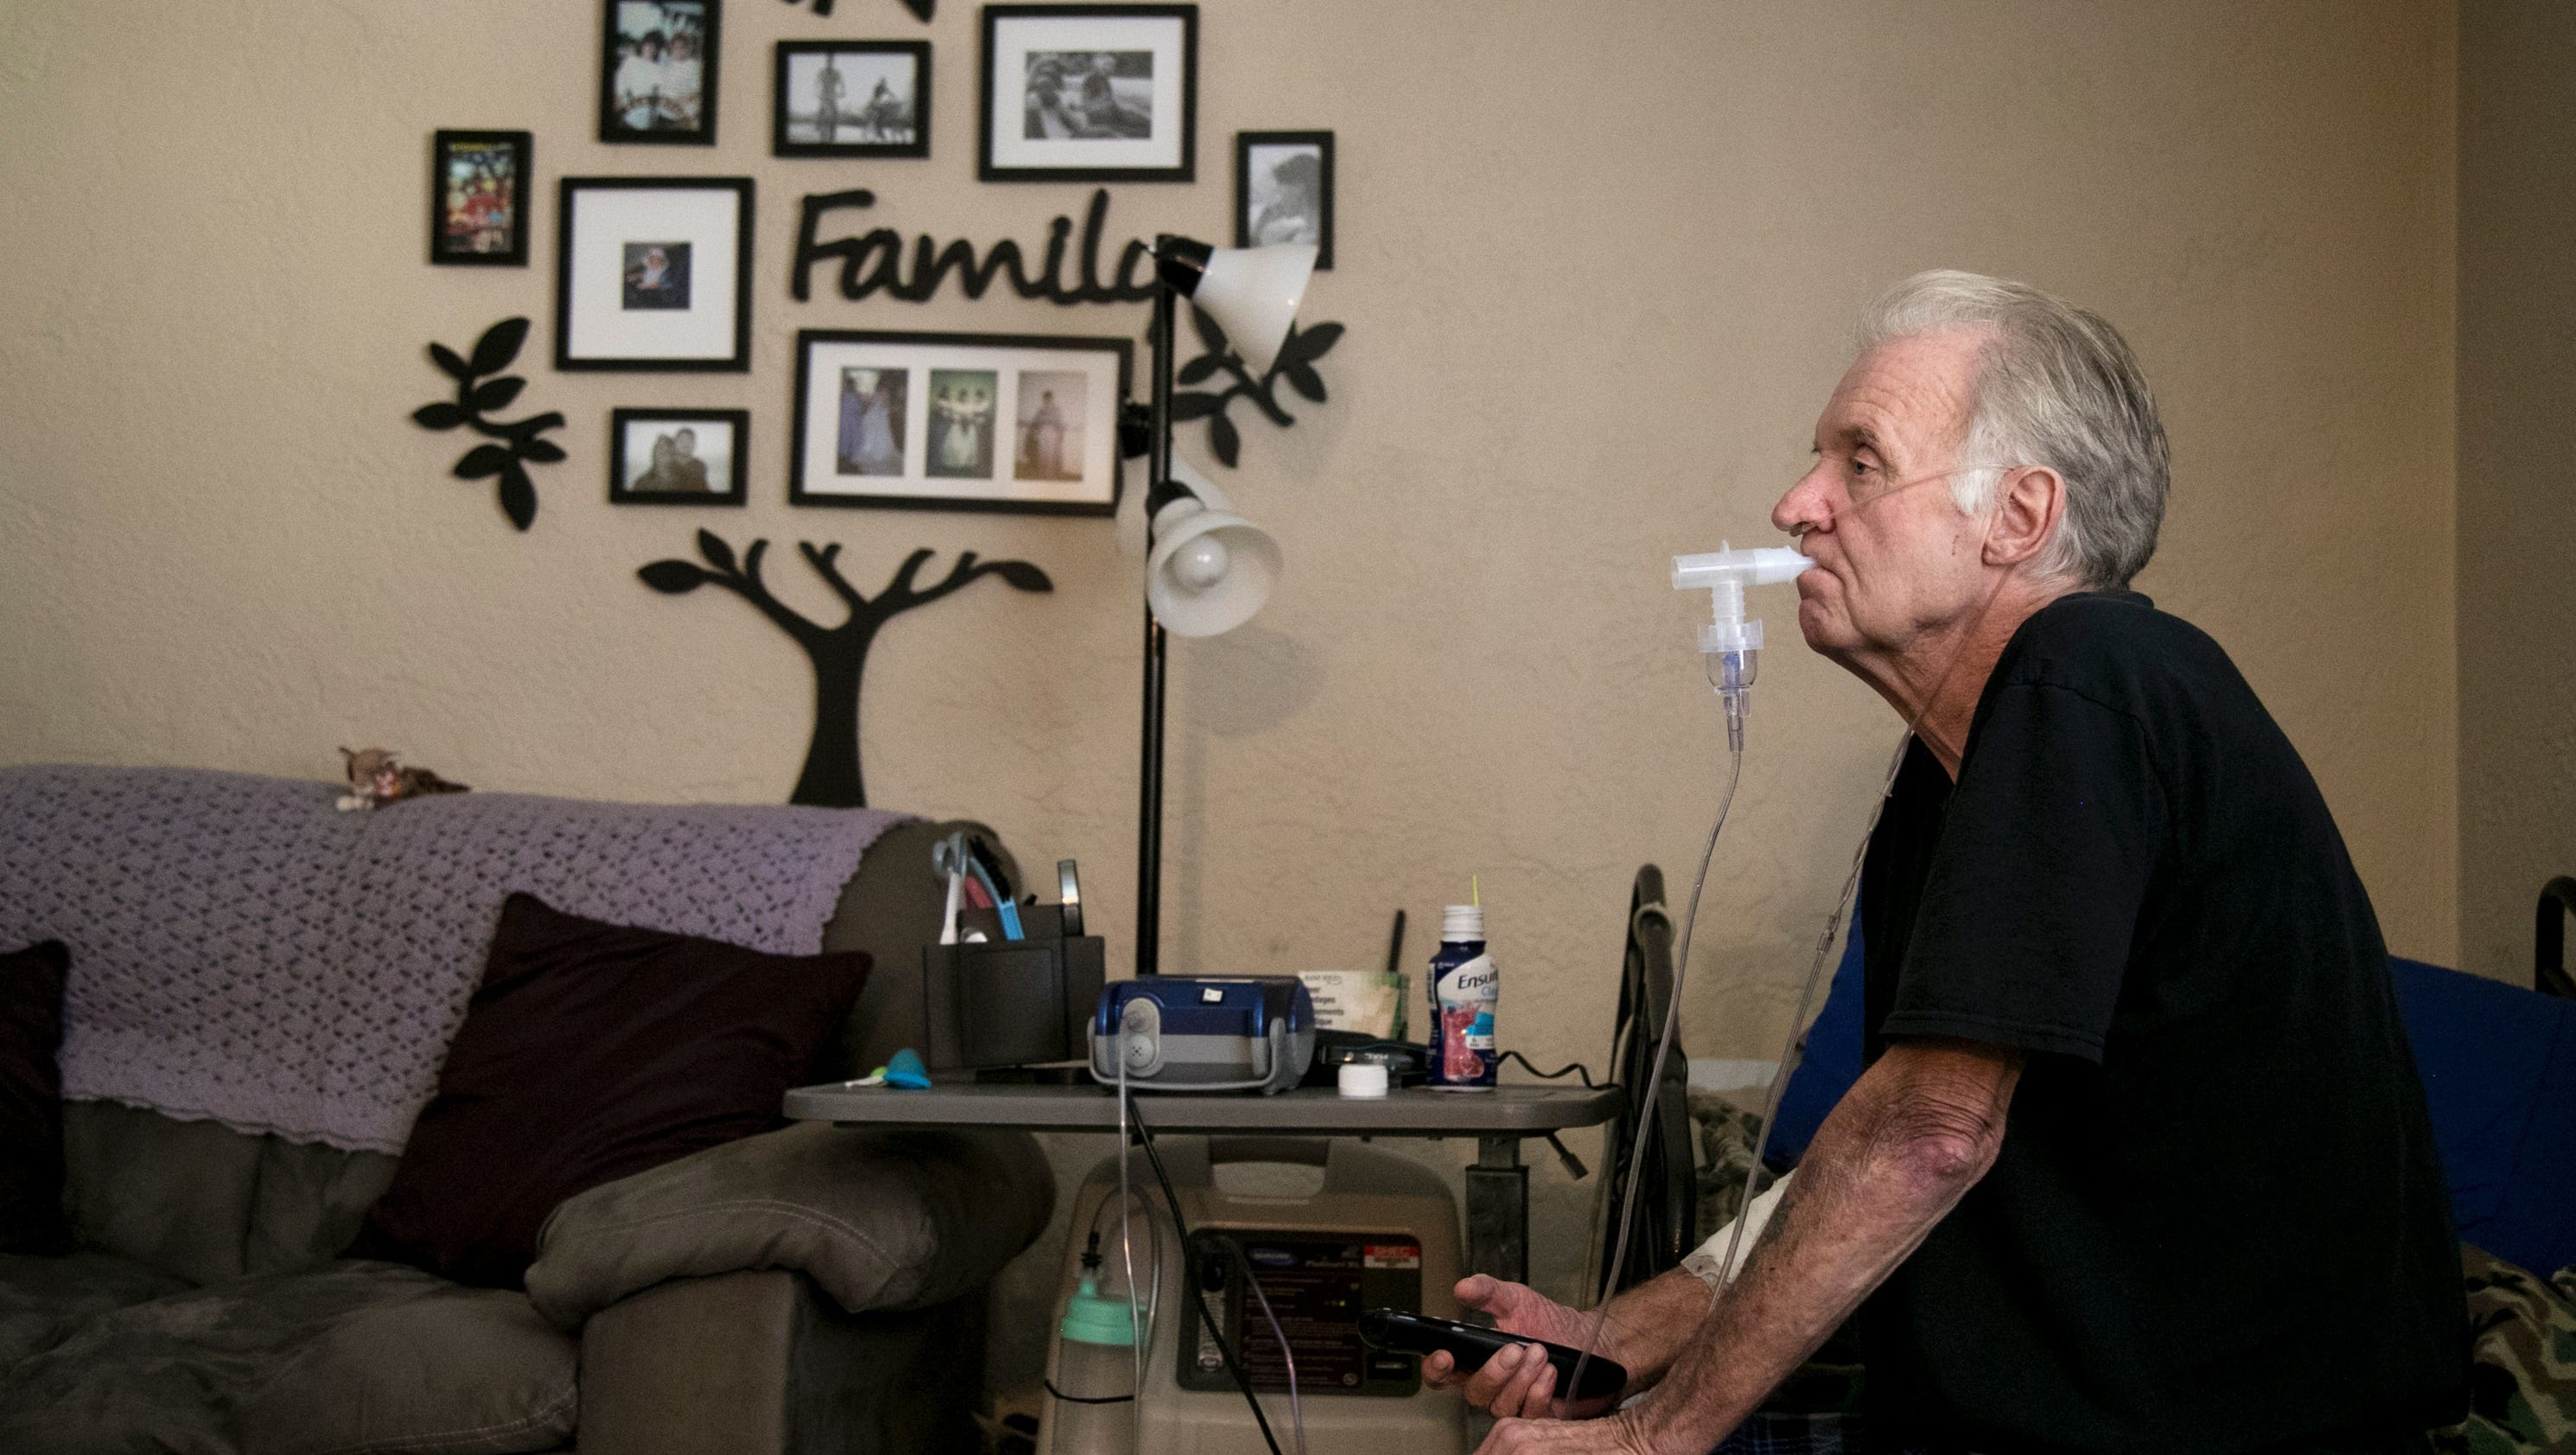 End-of-life advice: More than 500,000 chat on Medicare's dime